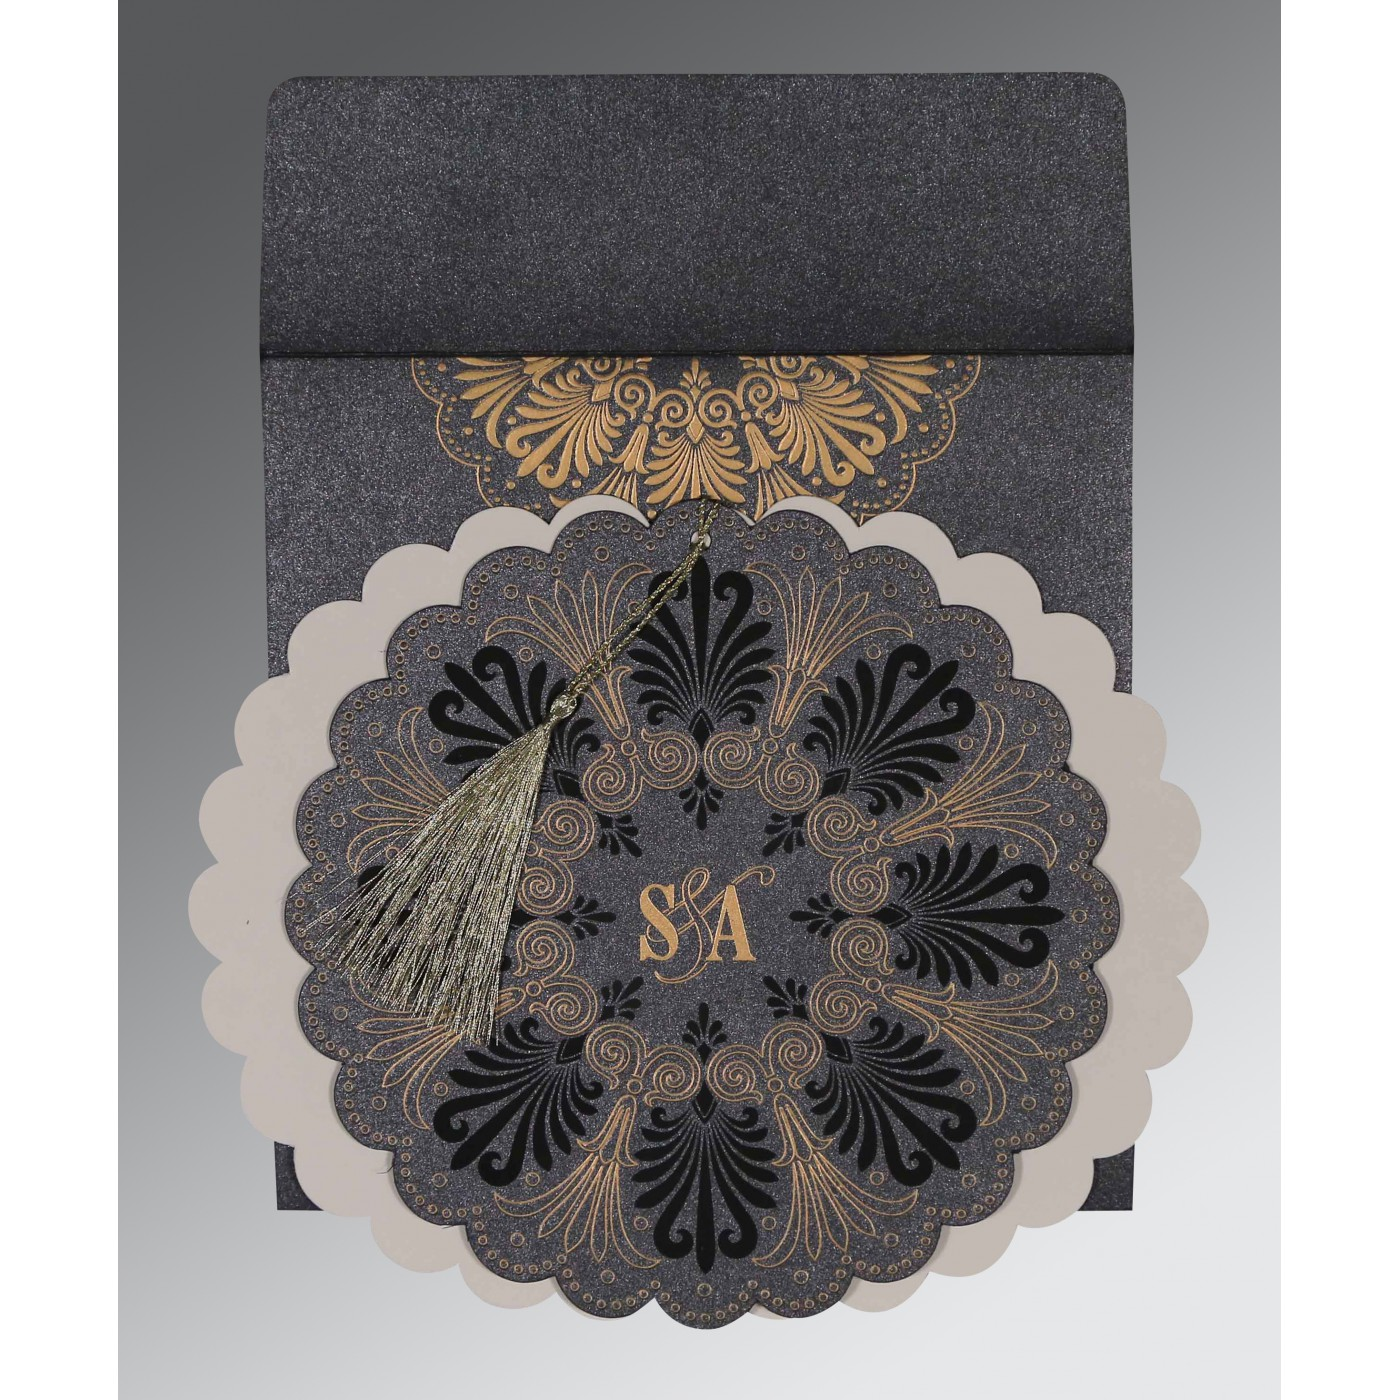 GRAPHITE GREY SHIMMERY FLORAL THEMED - EMBOSSED WEDDING CARD : AS-8238D - A2zWeddingCards